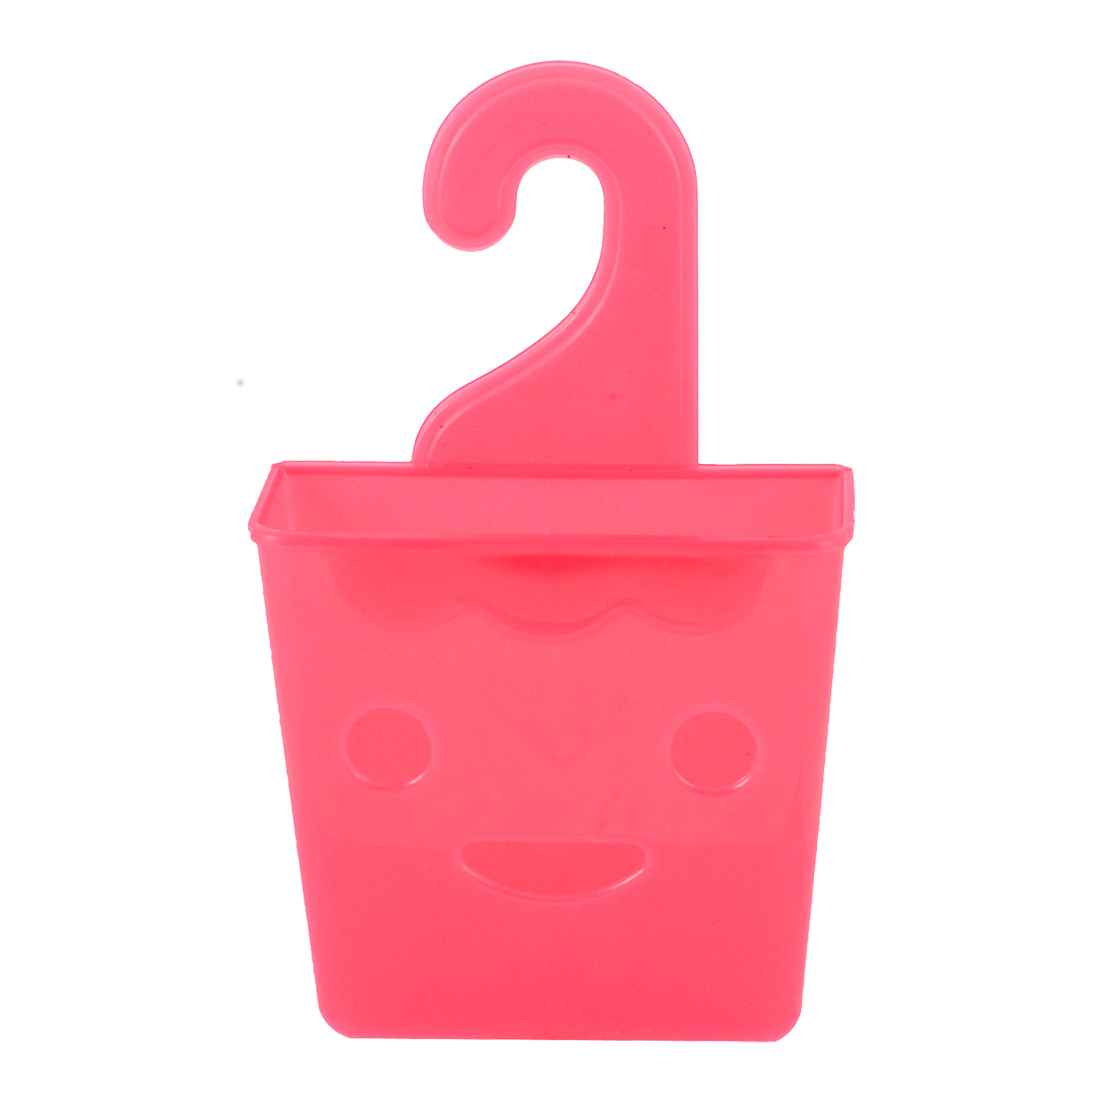 Bathroom Closet Wall Plastic Hanging Storage Case Basket Holder Fuchsia